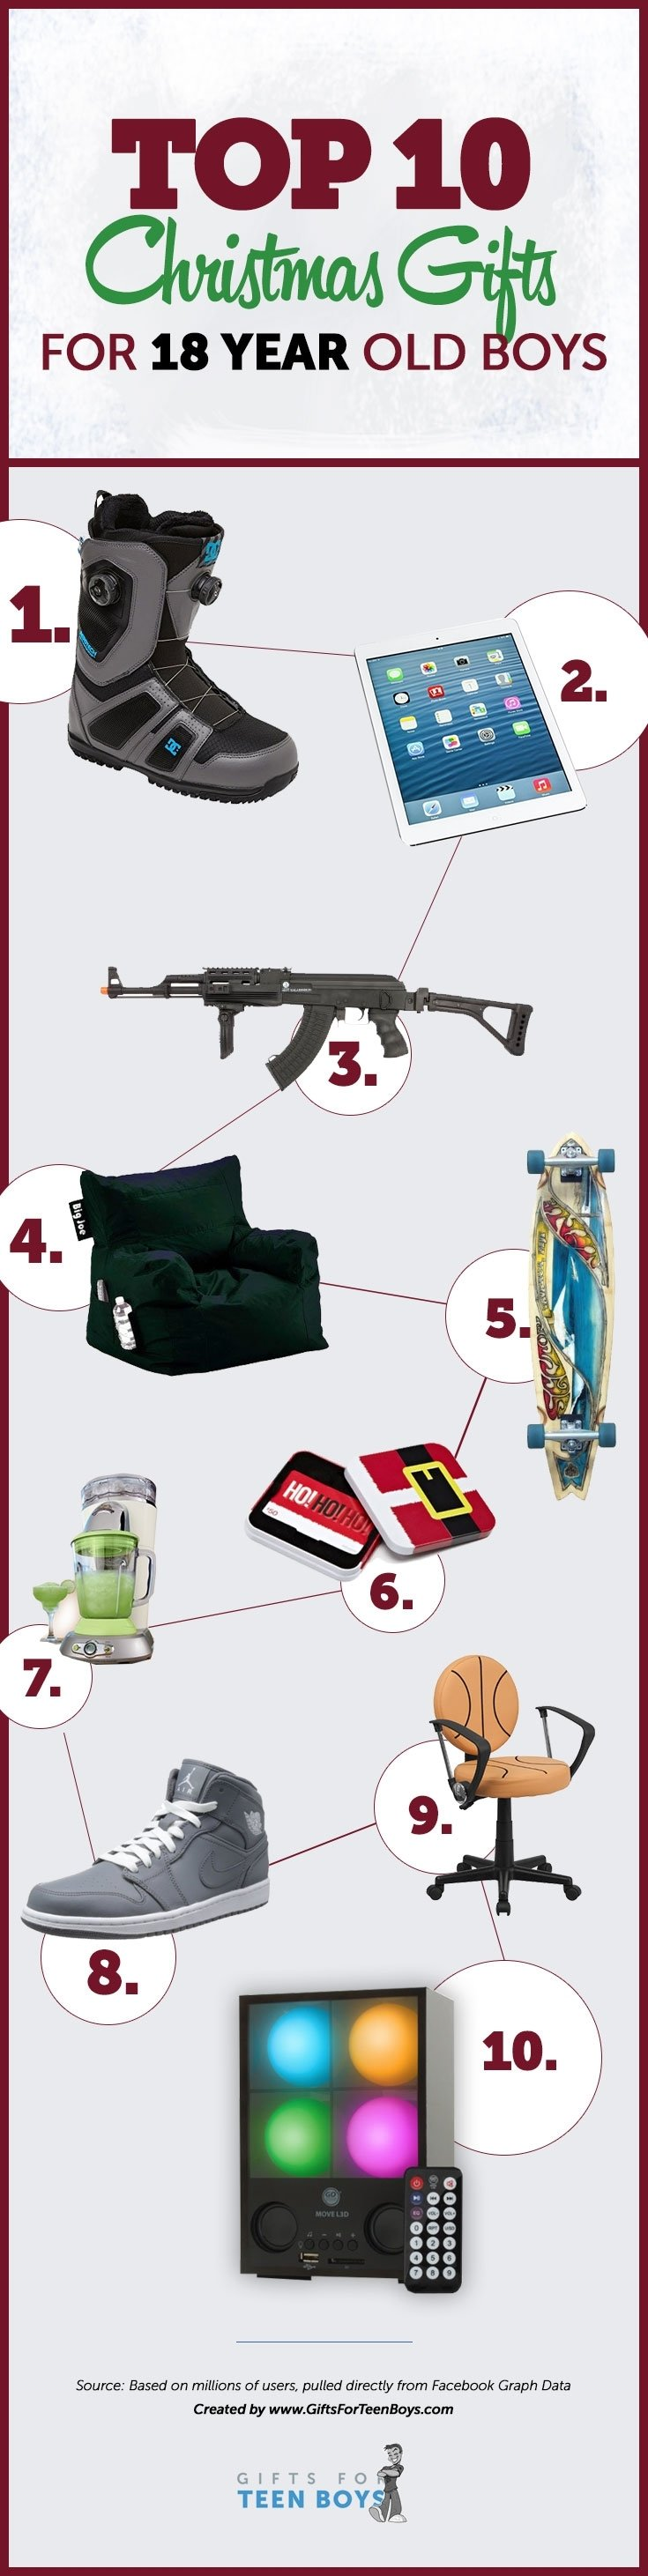 10 Pretty Christmas Gift Ideas For 17 Year Old Boy christmas gifts 18 year old boys top 10 christmas gifts christmas 1 2021